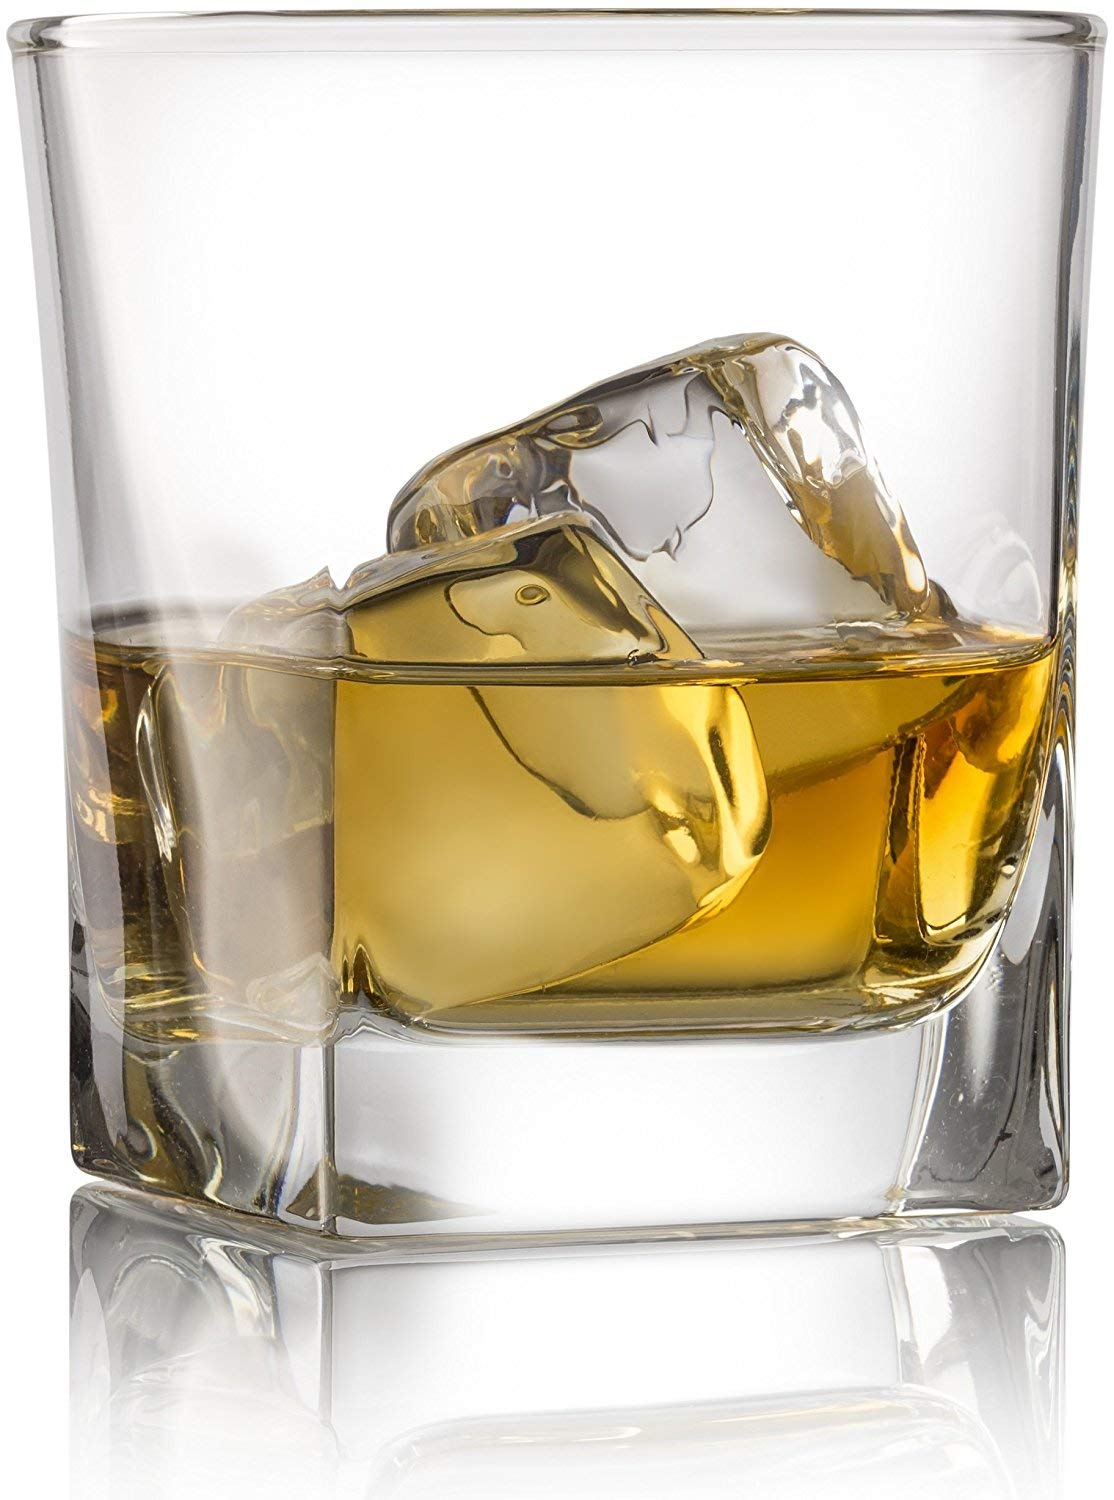 Double Old Fashioned Whiskey Glass (Set of 4) with Granite Chilling Stones - 10 oz Heavy Base Rocks Barware Glasses for Scotch, Bourbon and Cocktail Drinks by Red Rocks